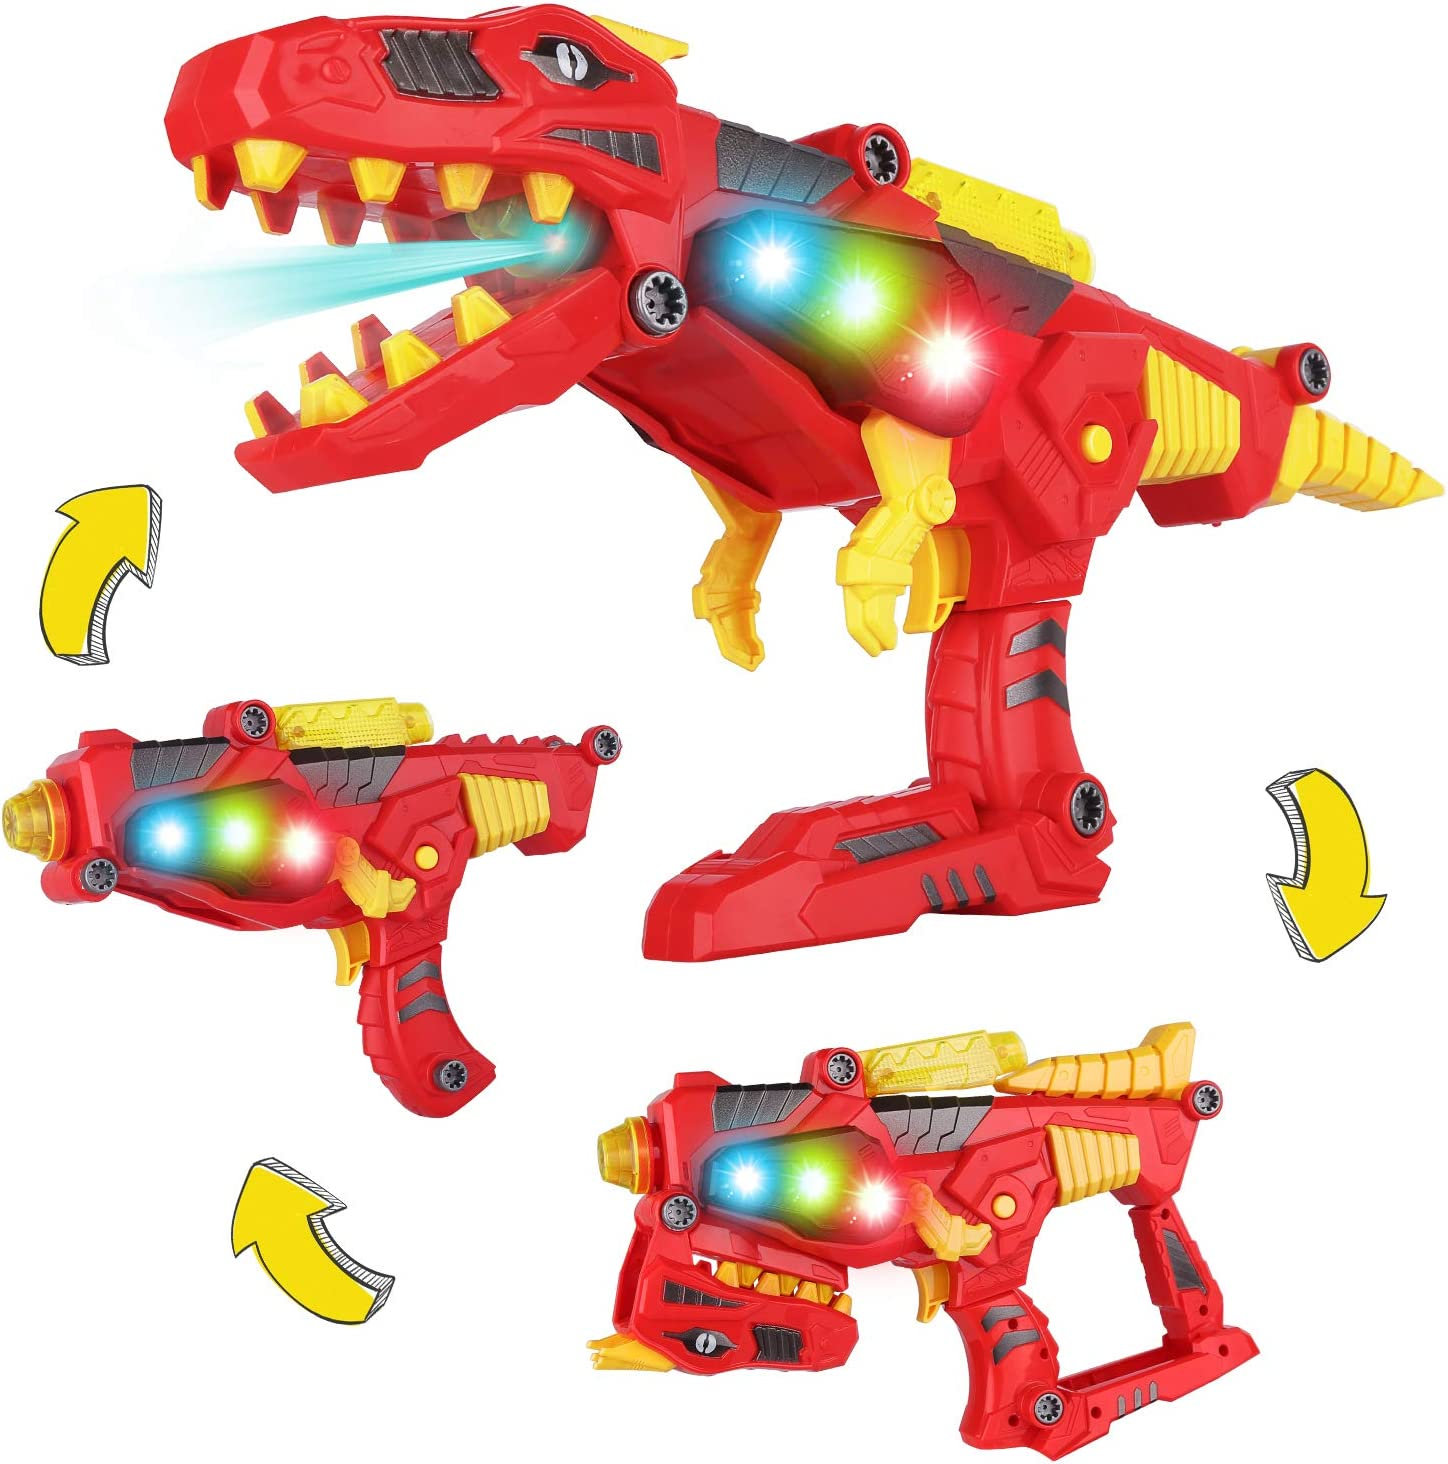 Dinosaurs Model Toy Transform Gun Toy 2 in 1 With Sound Light Kids Good Gift